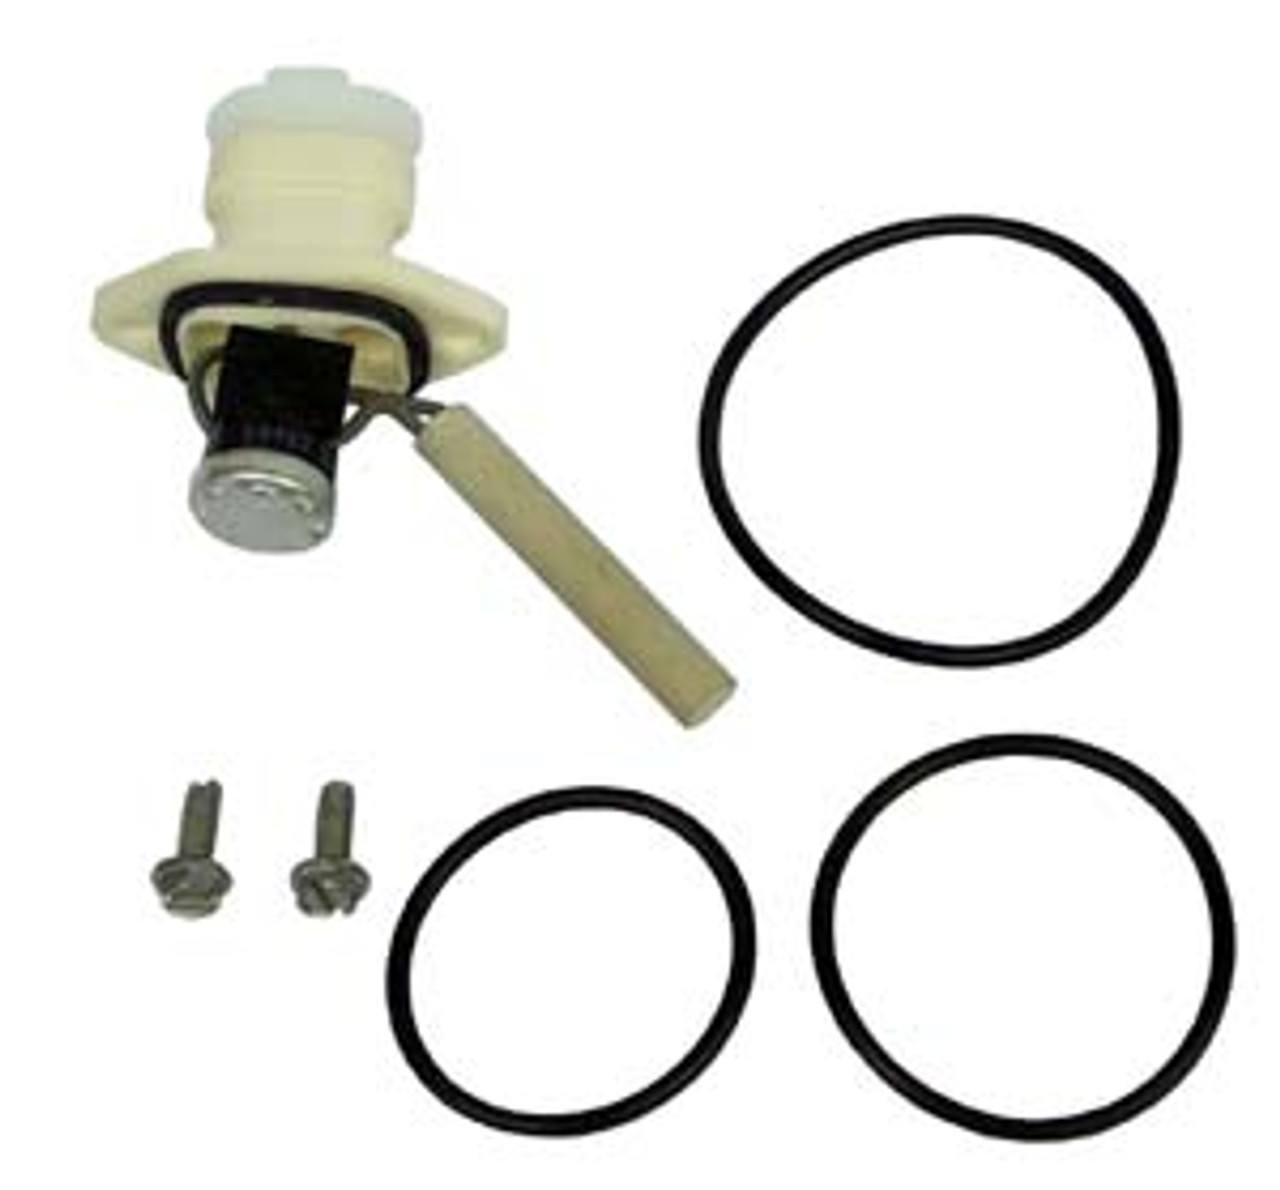 Bendix AD-9 / AD-9si Heater & Thermostat Replacement Kit 12V *Genuine Bendix* 109578